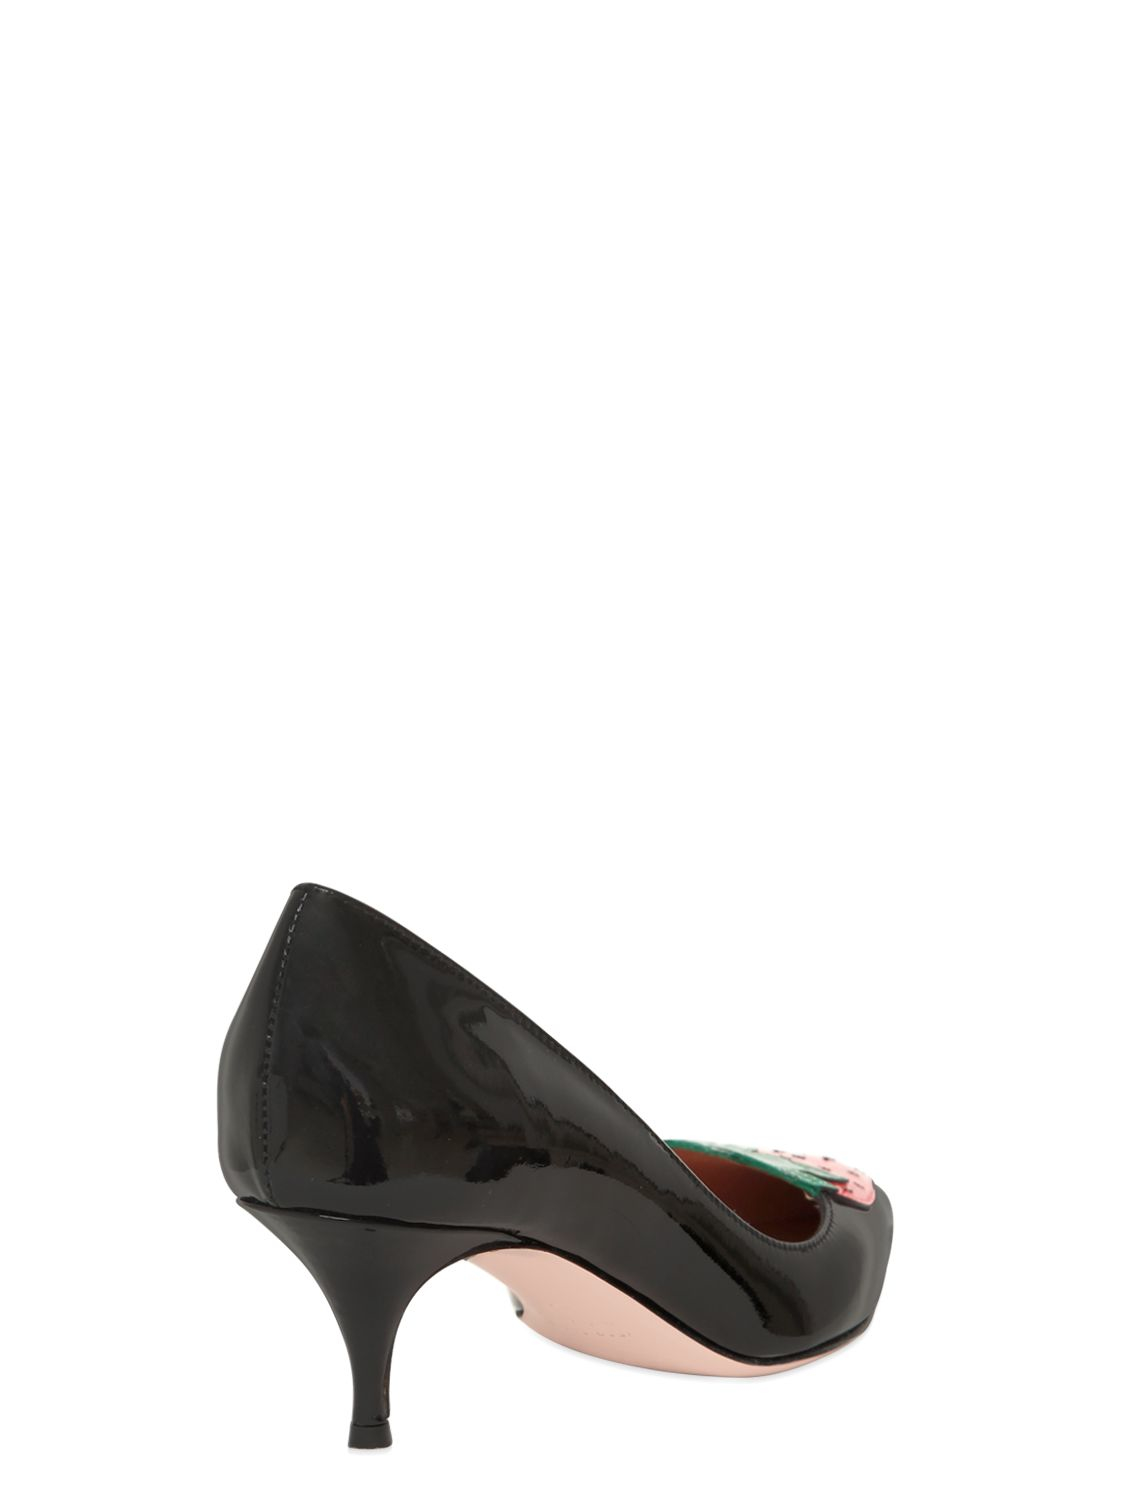 Red valentino 55mm Strawberry Patent Leather Pumps in Black | Lyst